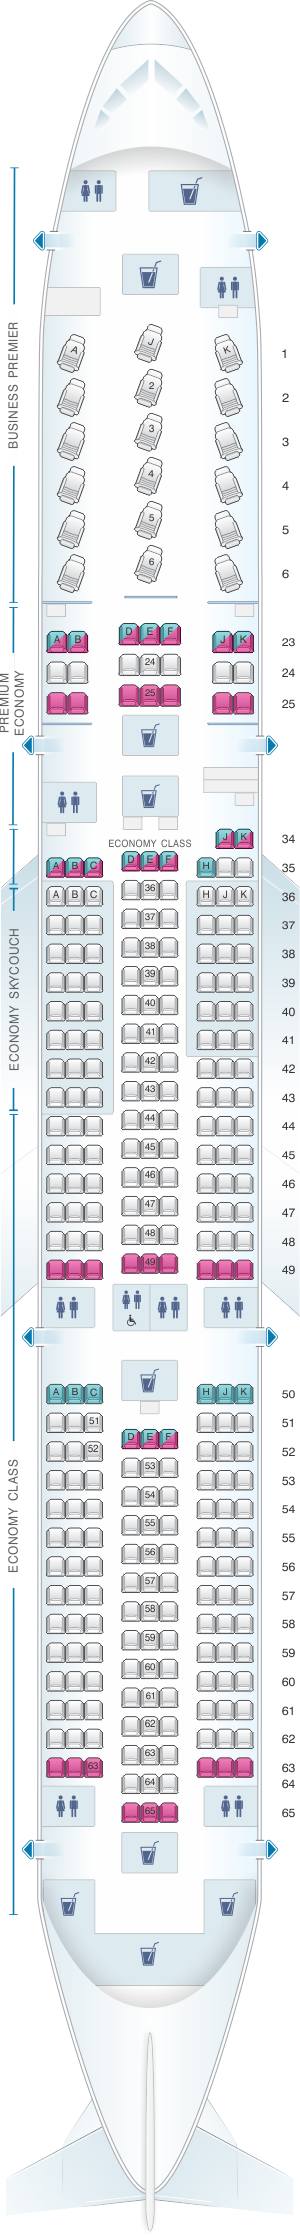 Seat map for Air New Zealand Boeing B787 9 Config.1